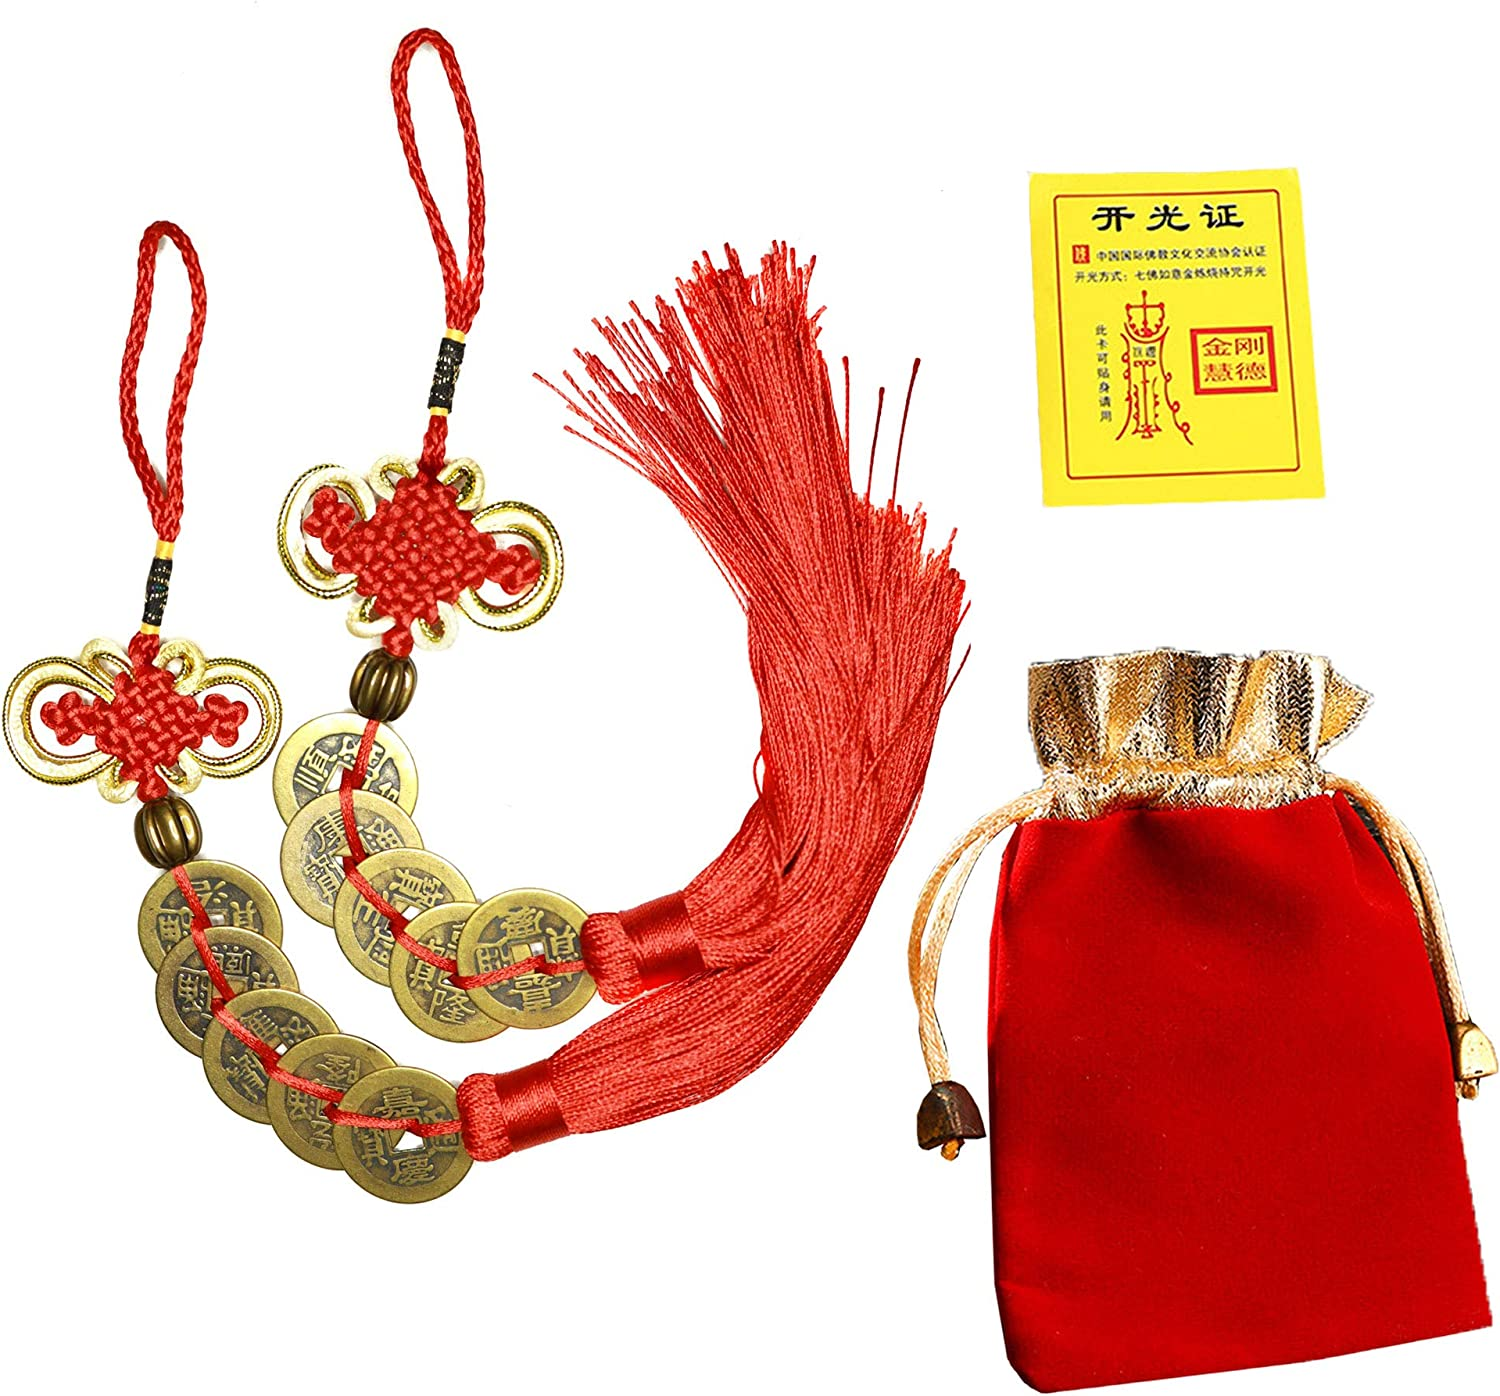 Chinese Feng Shui 5 Coins with Handmade Red Enless Knot 2021 Feng Shui Money Home Decor Hanging Decoration Lucky Ornaments for Car Wealth Success Travel Safely 2Pcs